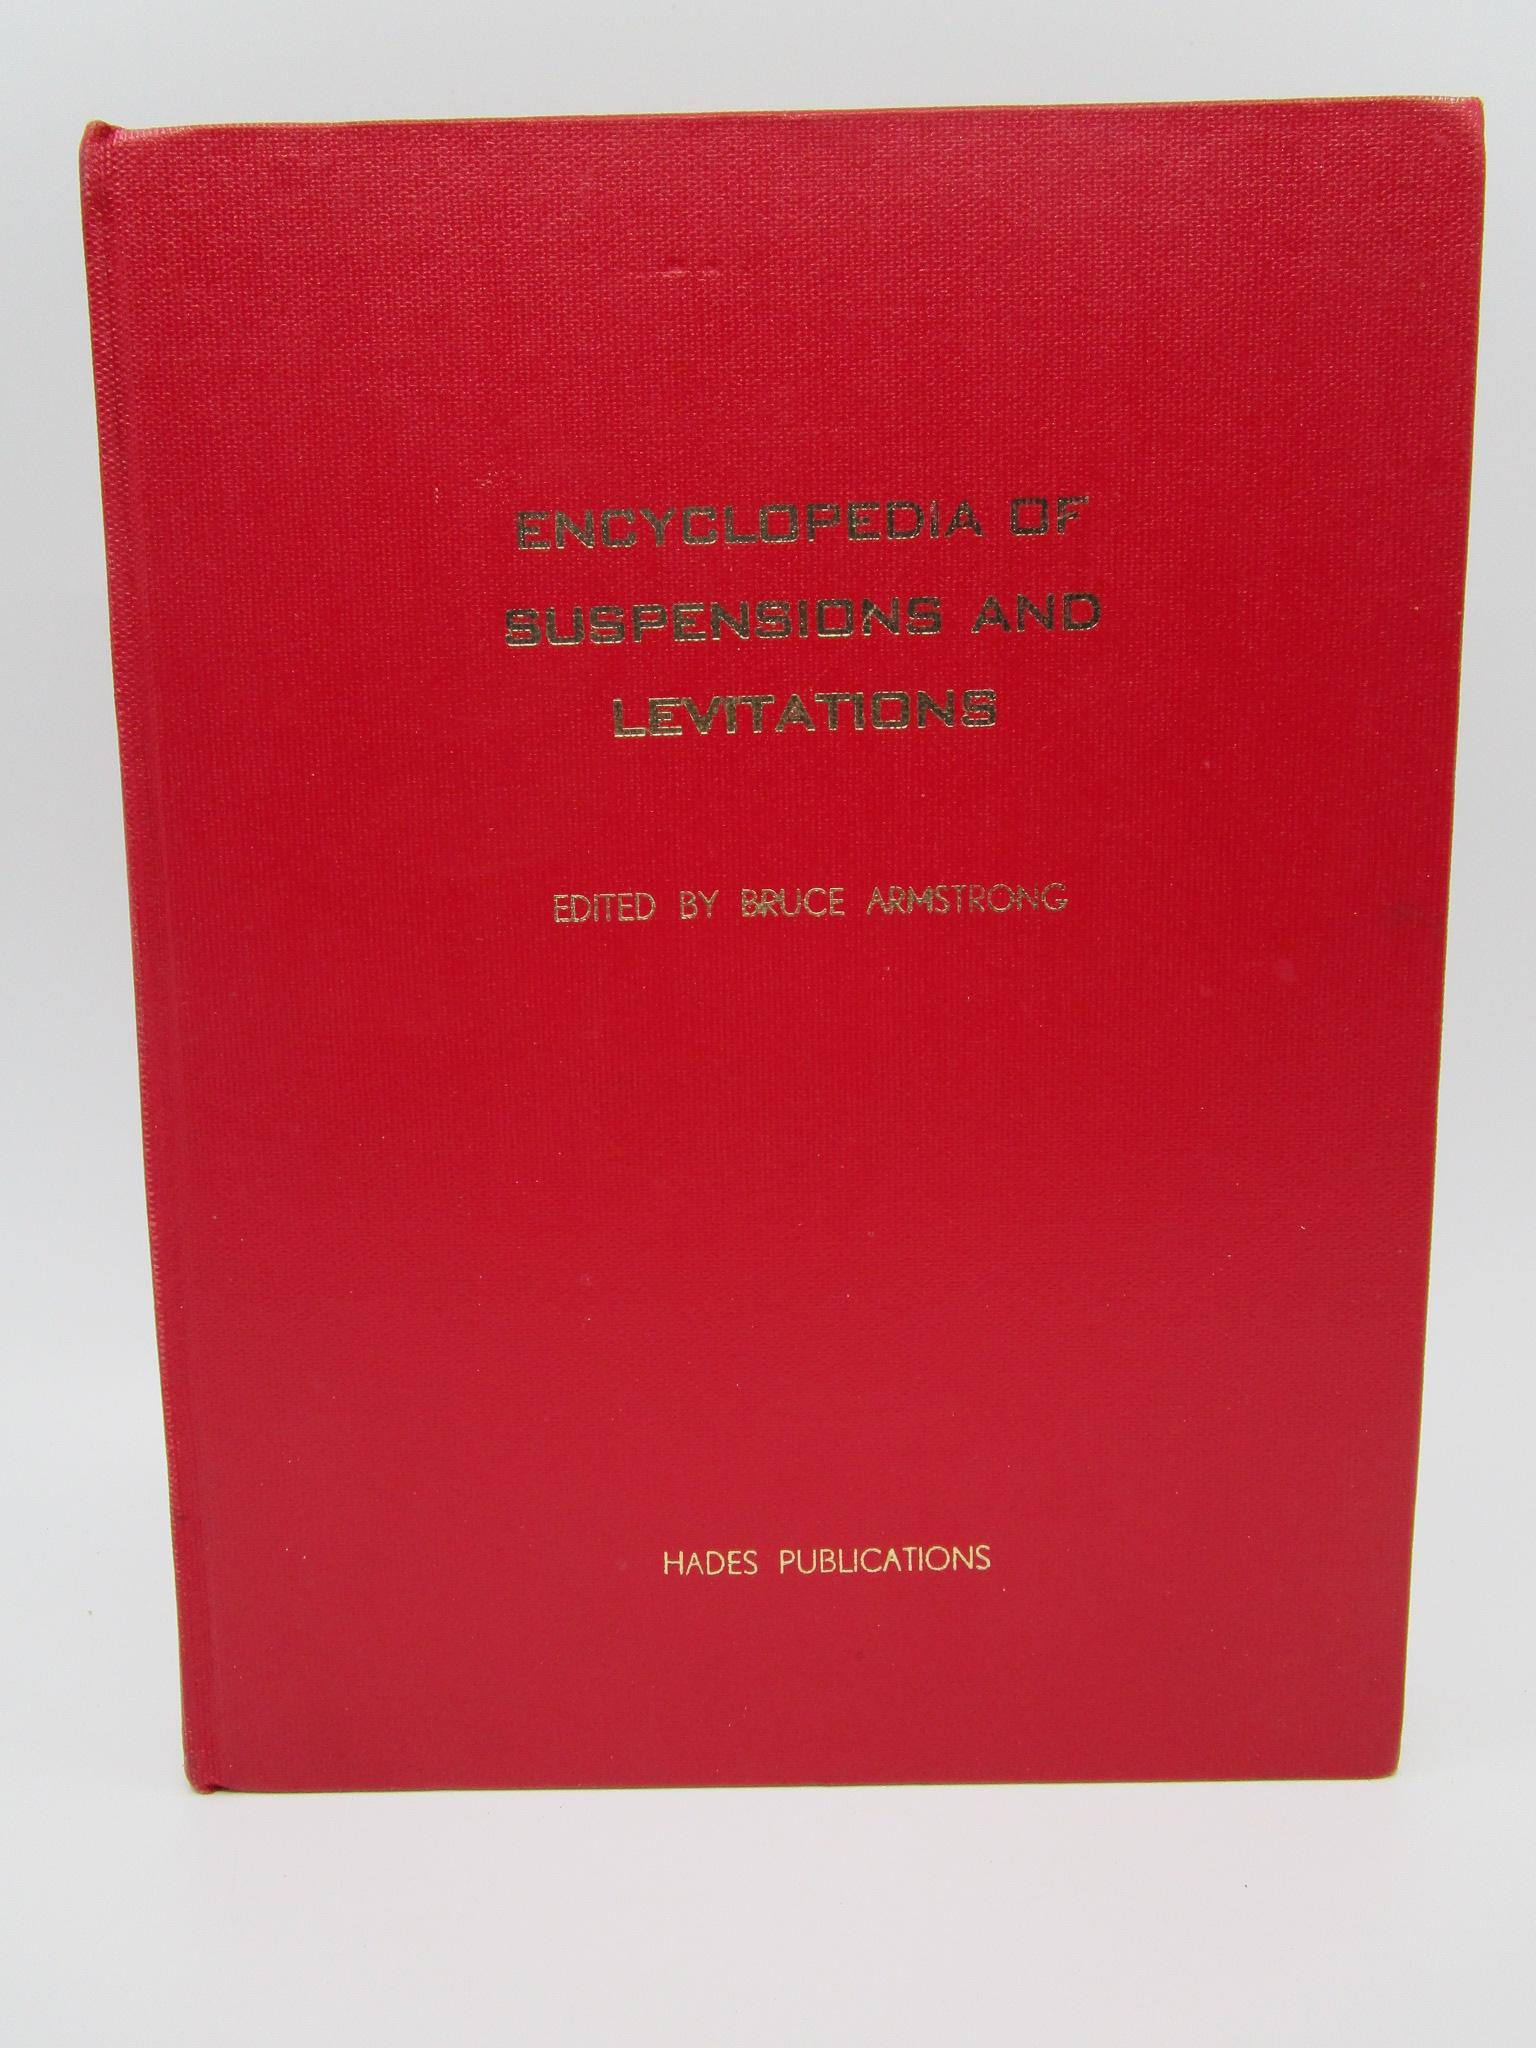 Image for Encyclopedia of Suspensions and Levitations